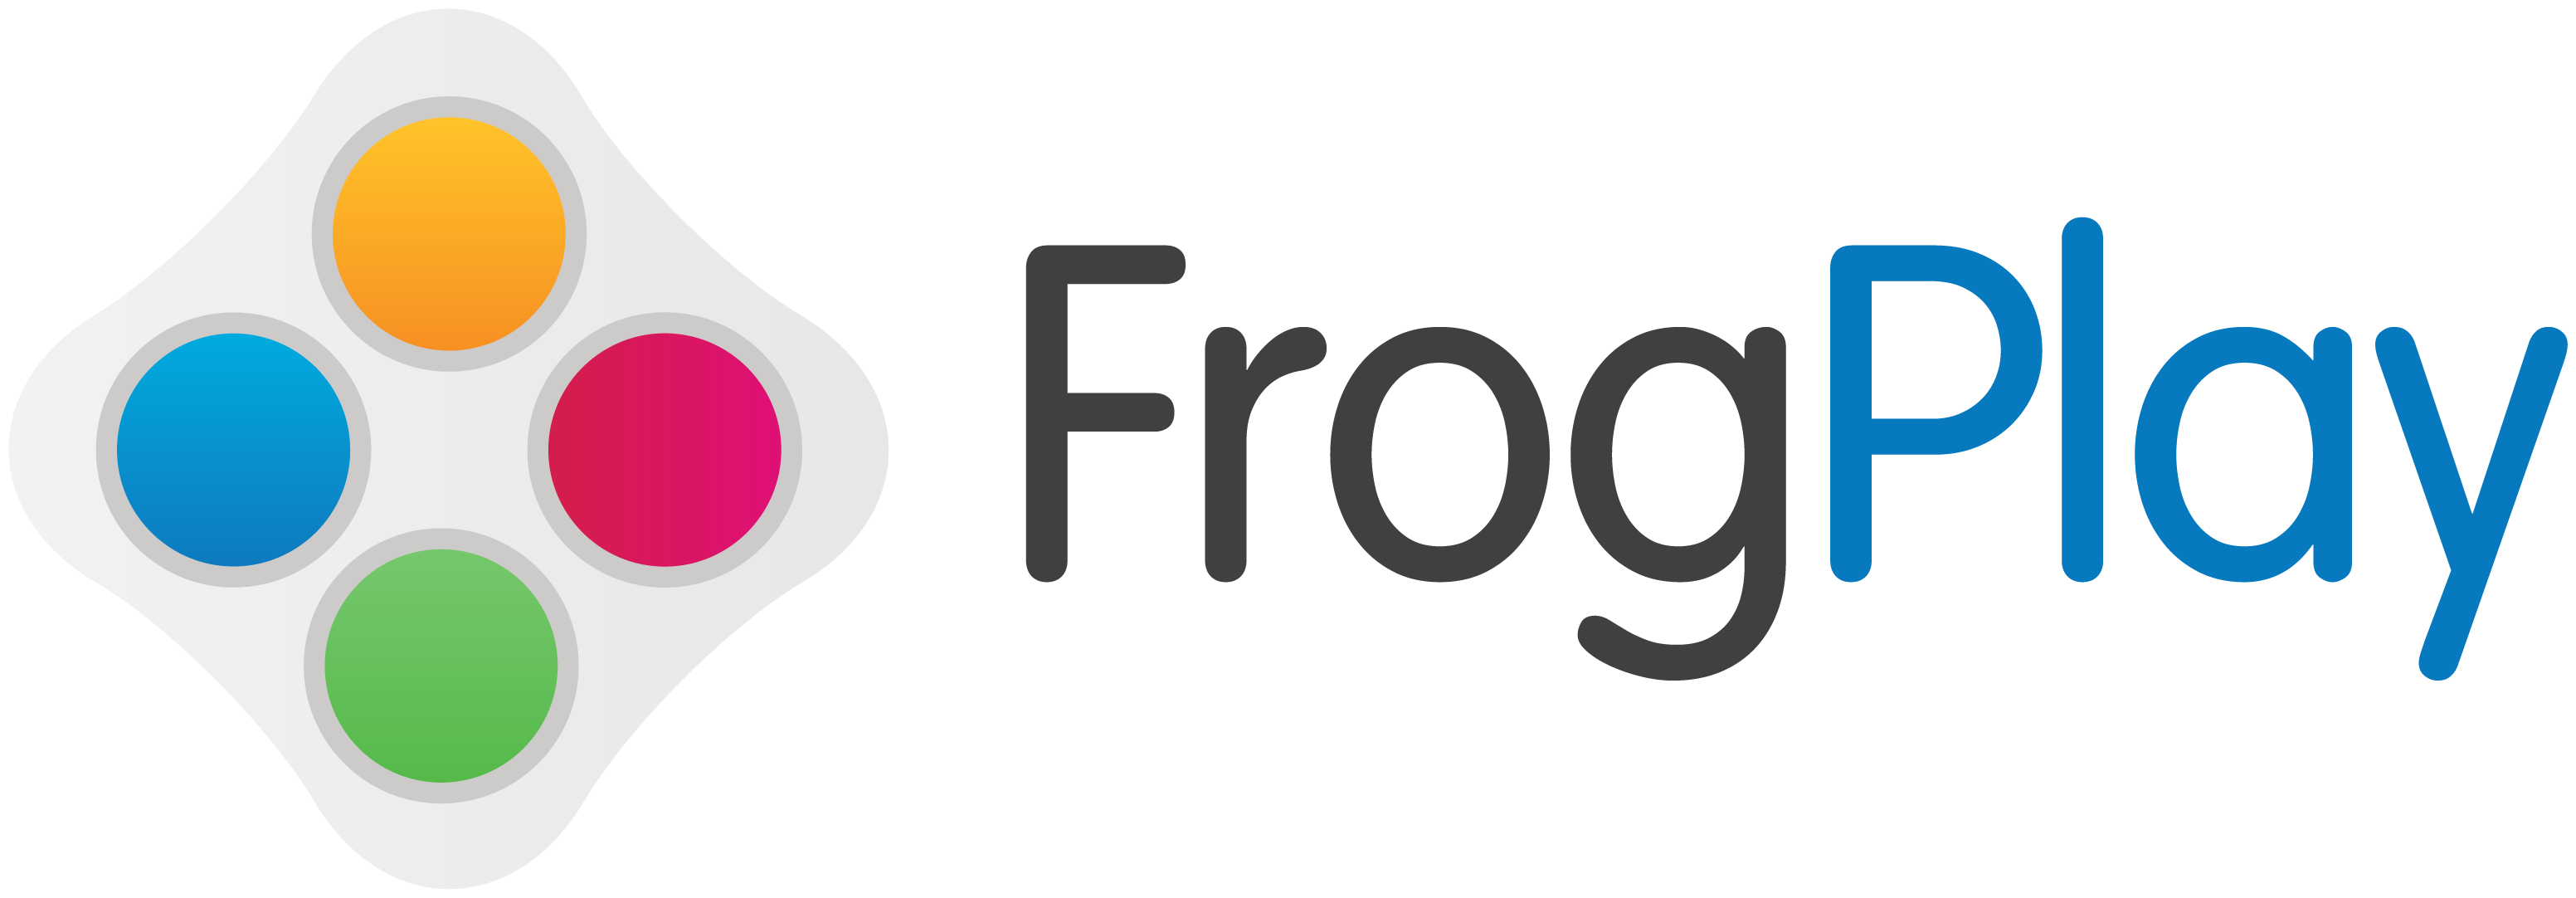 FrogPlay Logo Horizontal Full